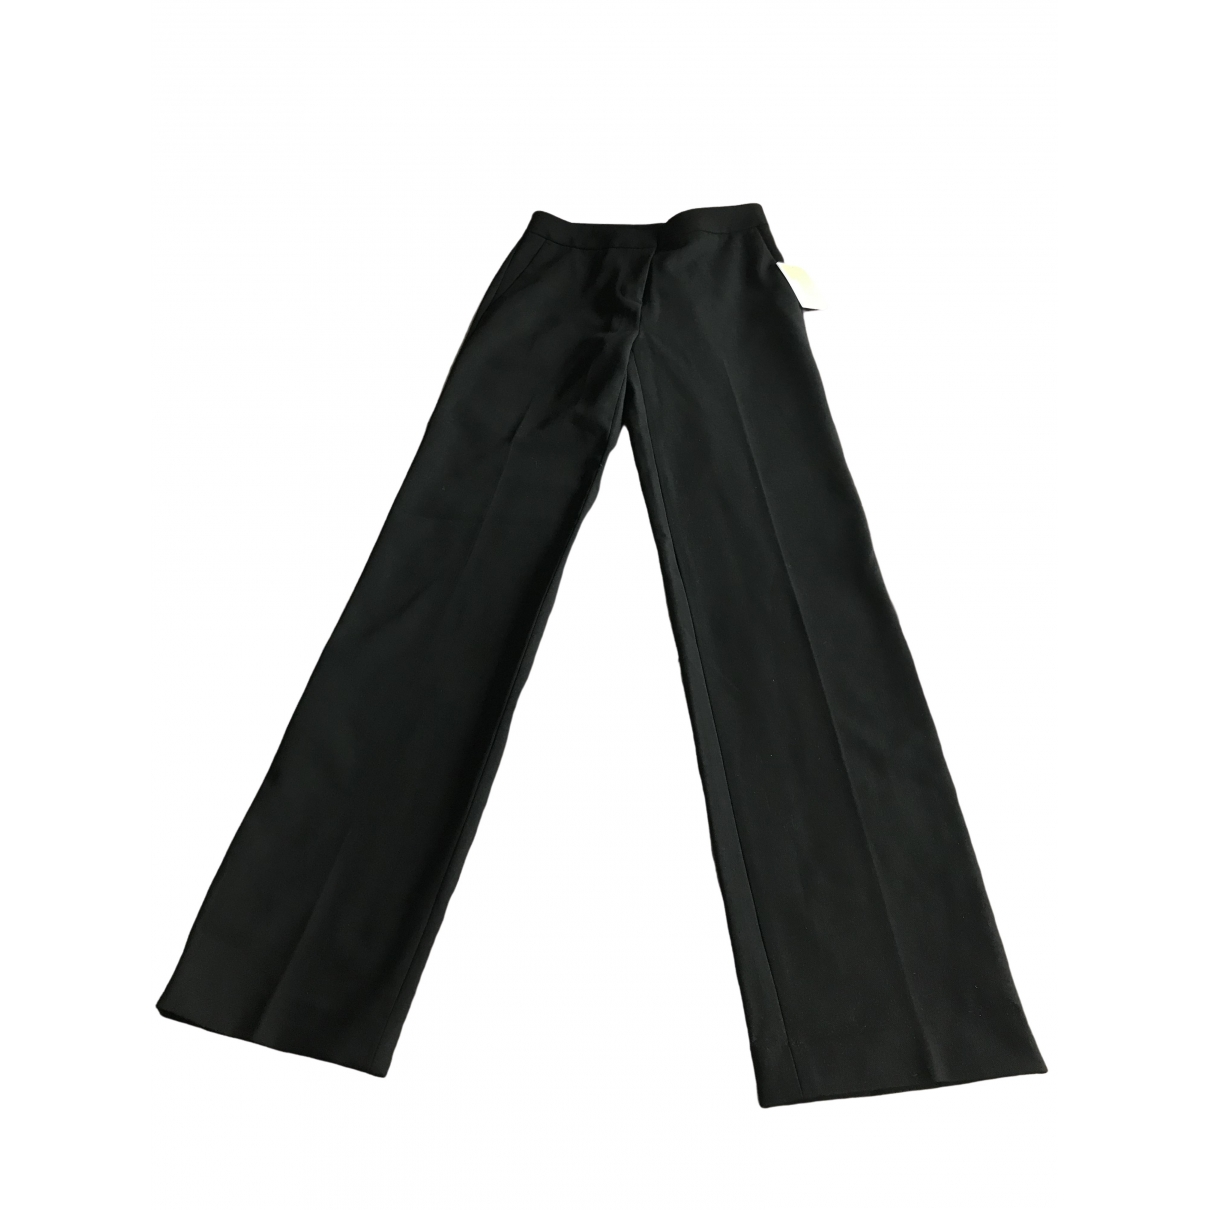 Michael Kors \N Black Wool Trousers for Women 8 UK